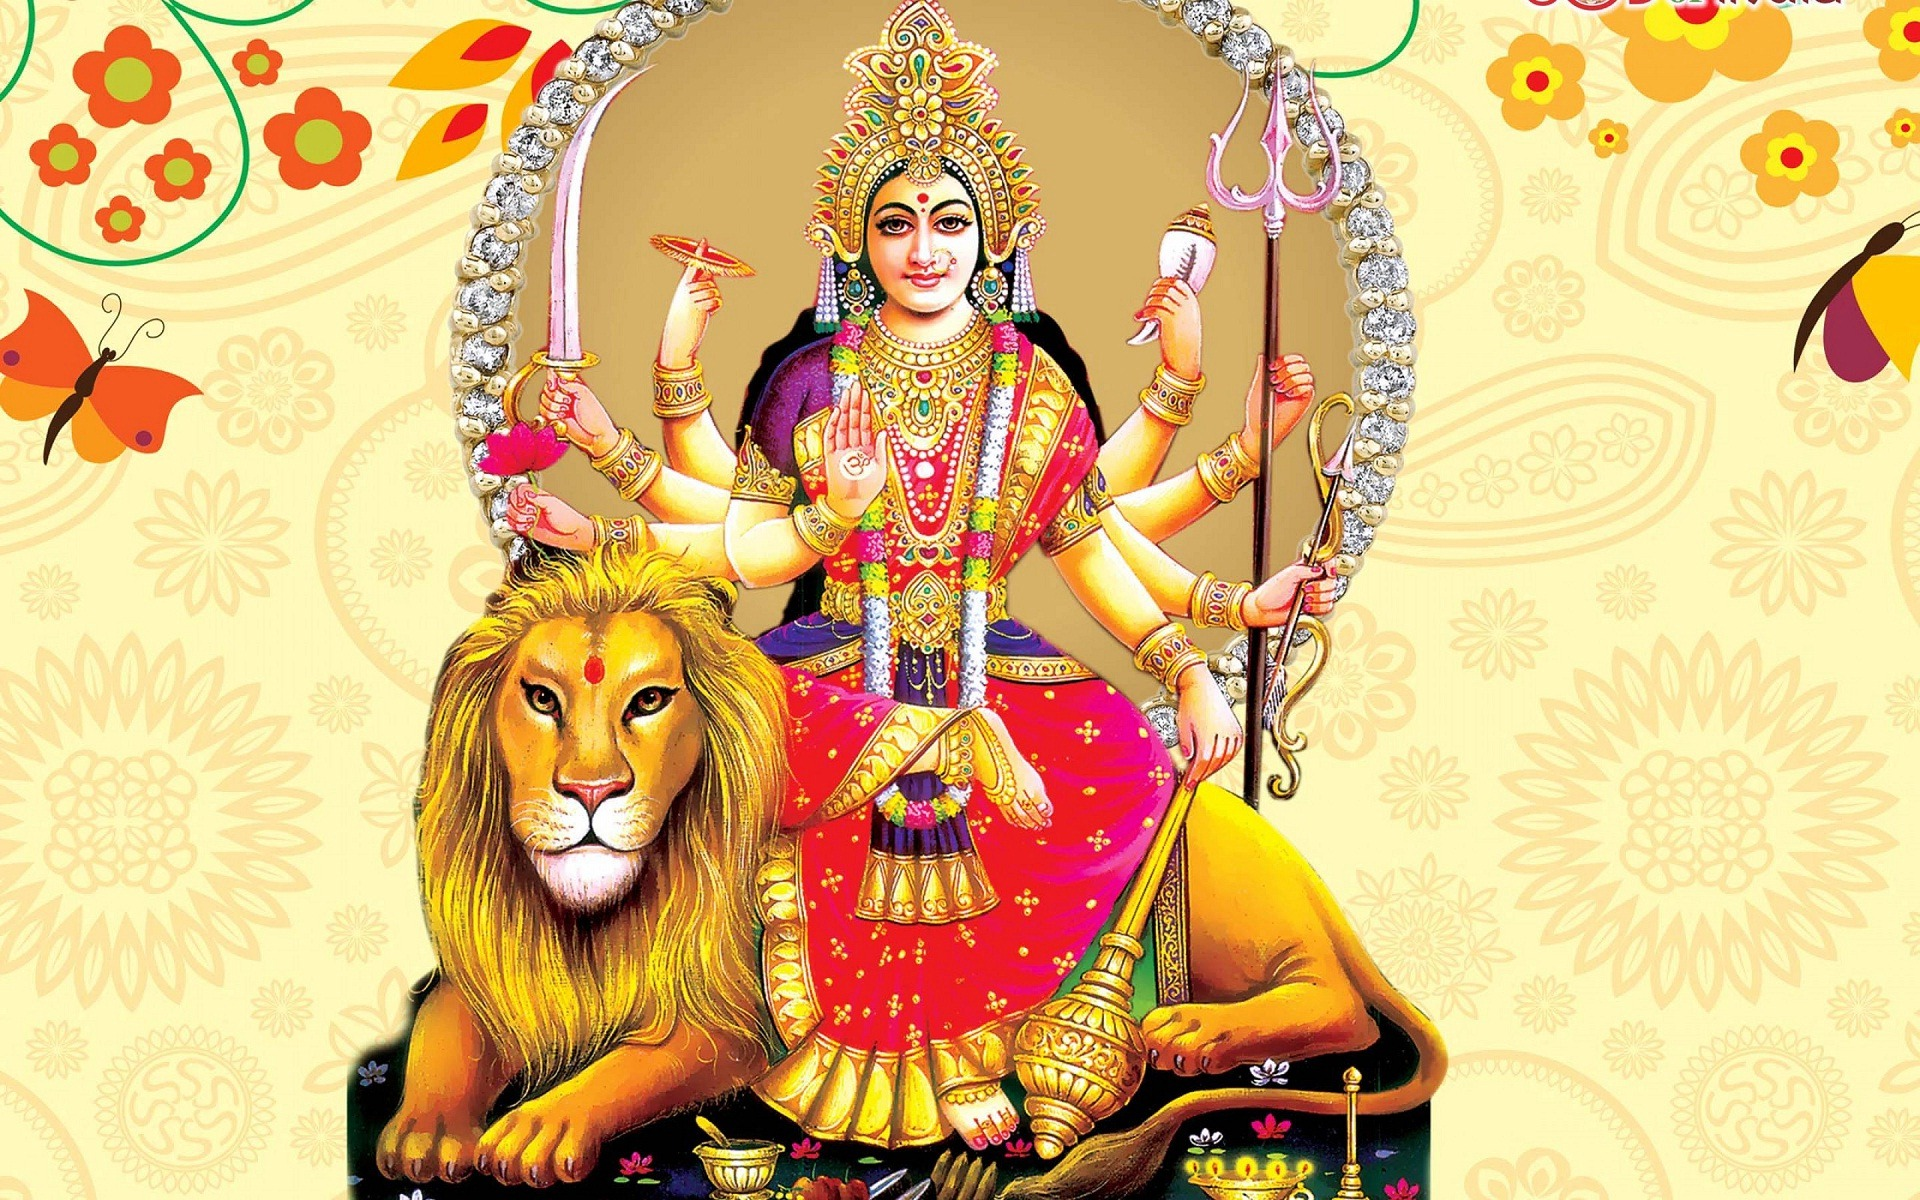 maa durga hd wallpaper images photos free download